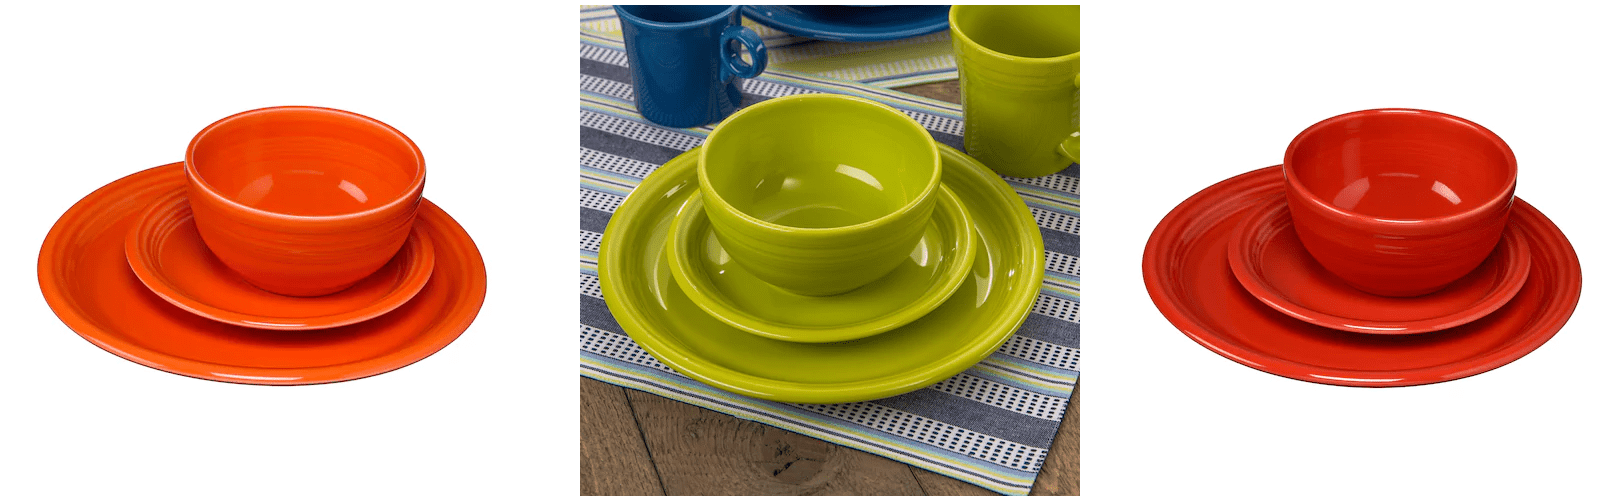 Grab this Fiesta Bistro 3-pc. Dinnerware Set for Only $13.99 (reg $47)  sc 1 st  My Momma Taught Me & Grab this Fiesta Bistro 3-pc. Dinnerware Set for Only $13.99 (reg ...